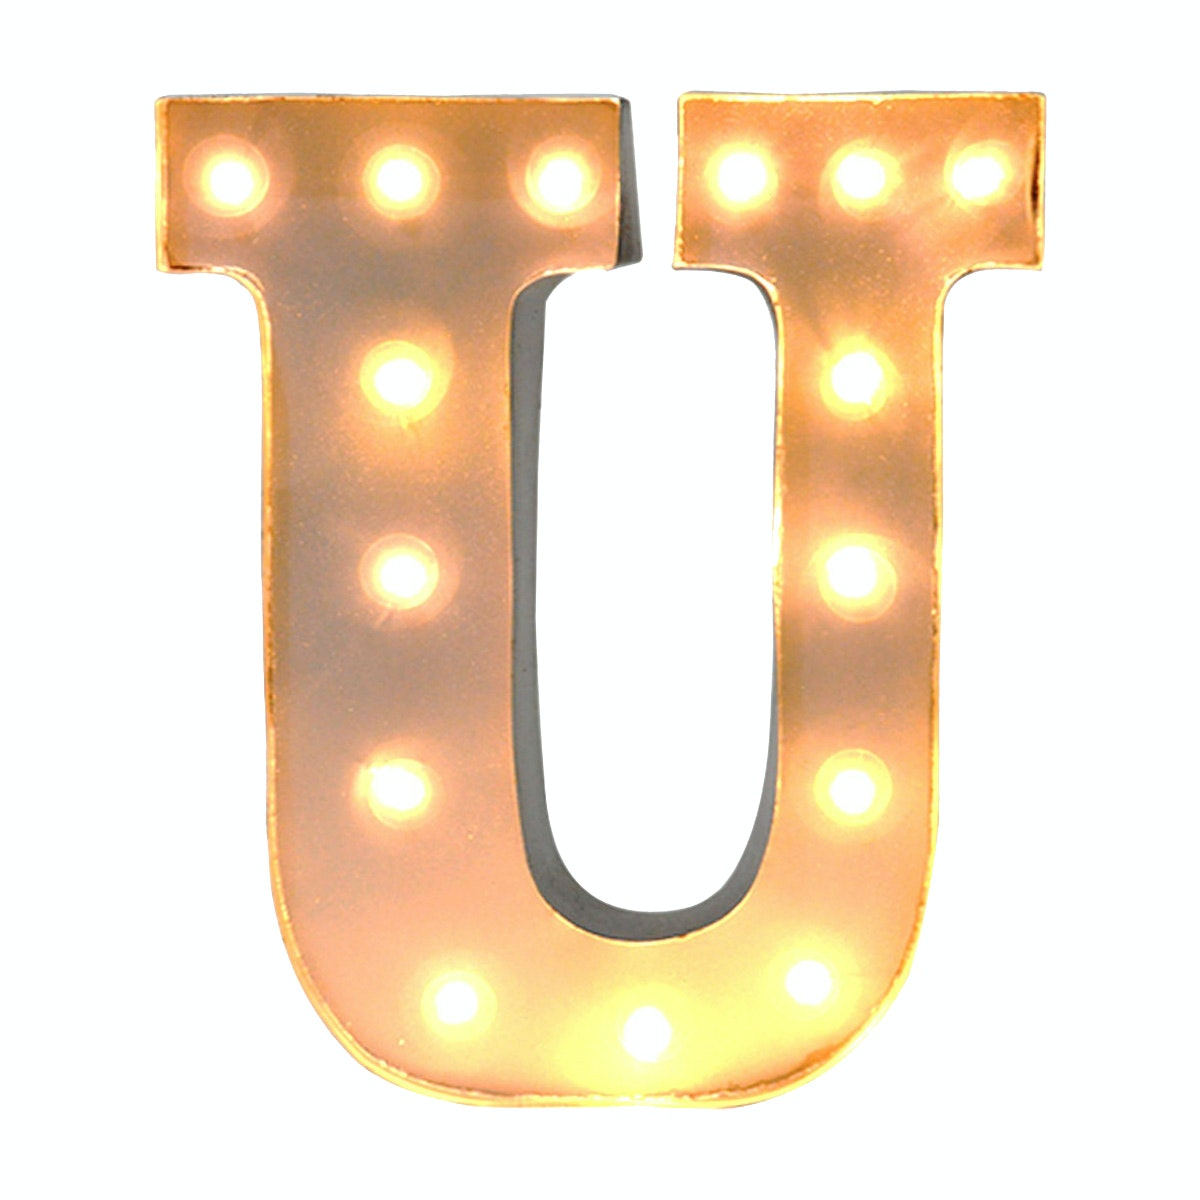 Lightcraft Indonesia Marquee Letter U